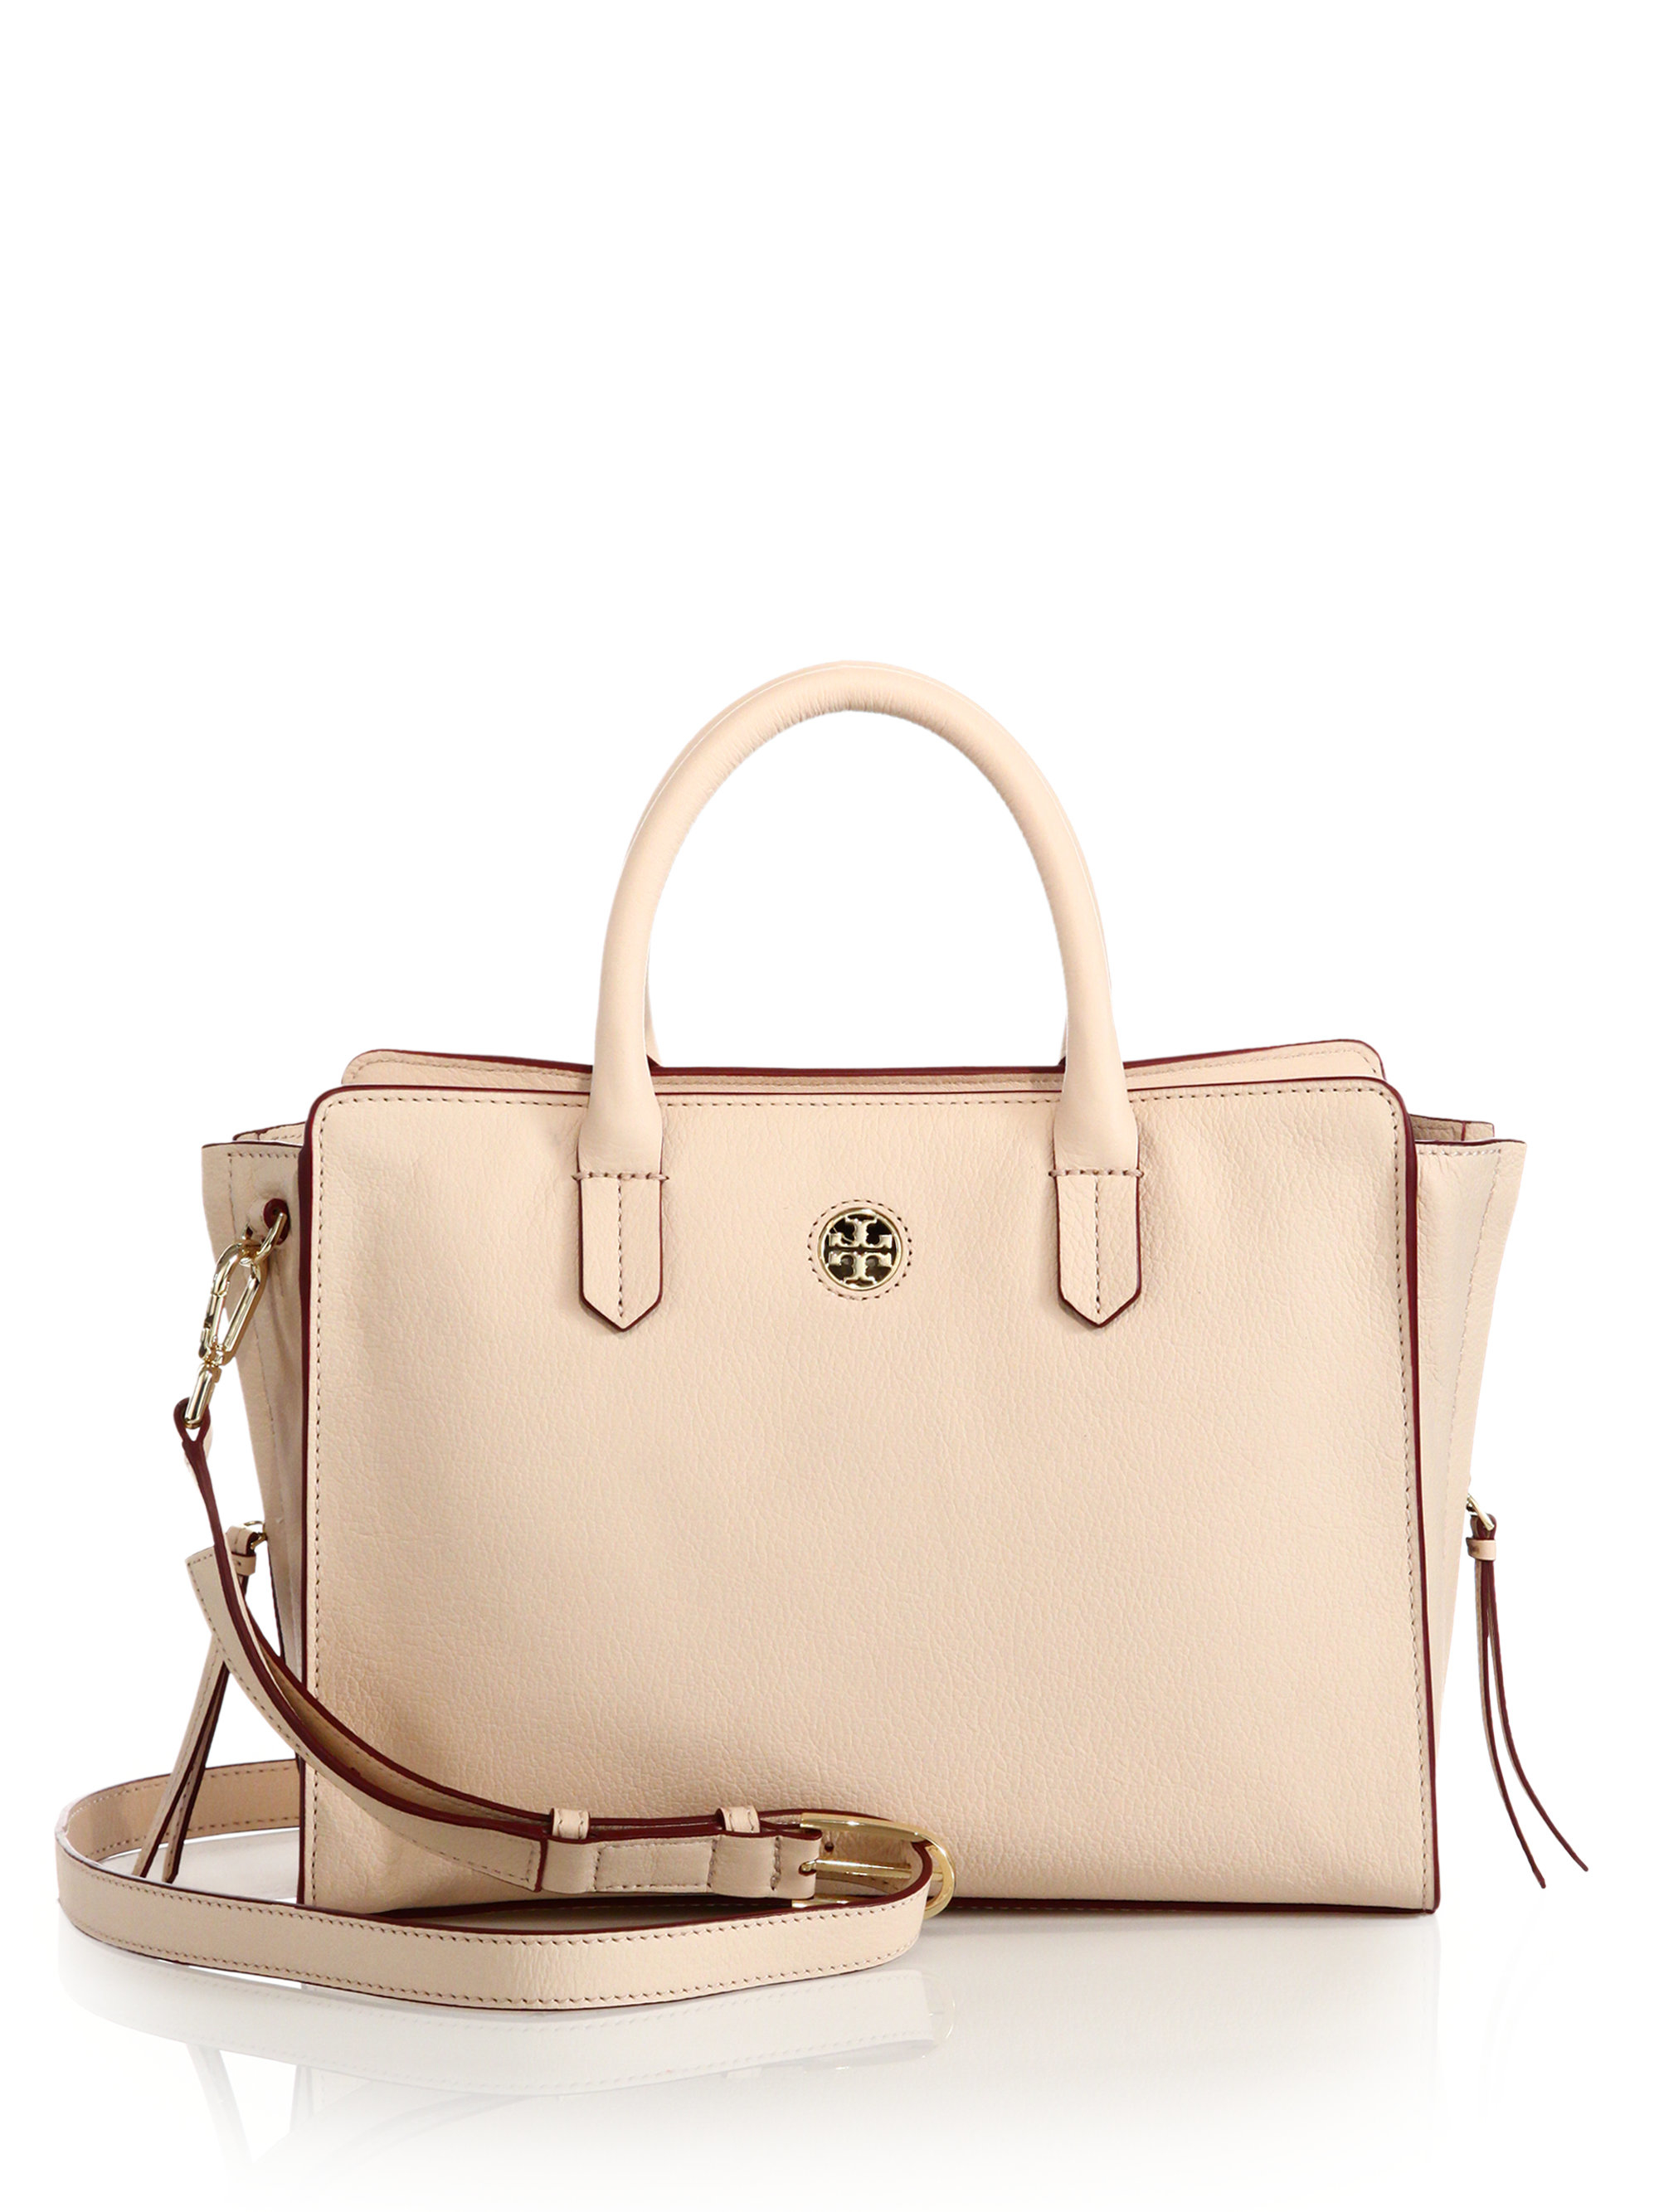 25b3c5119a Tory Burch Brody Small Leather Tote in Natural - Lyst